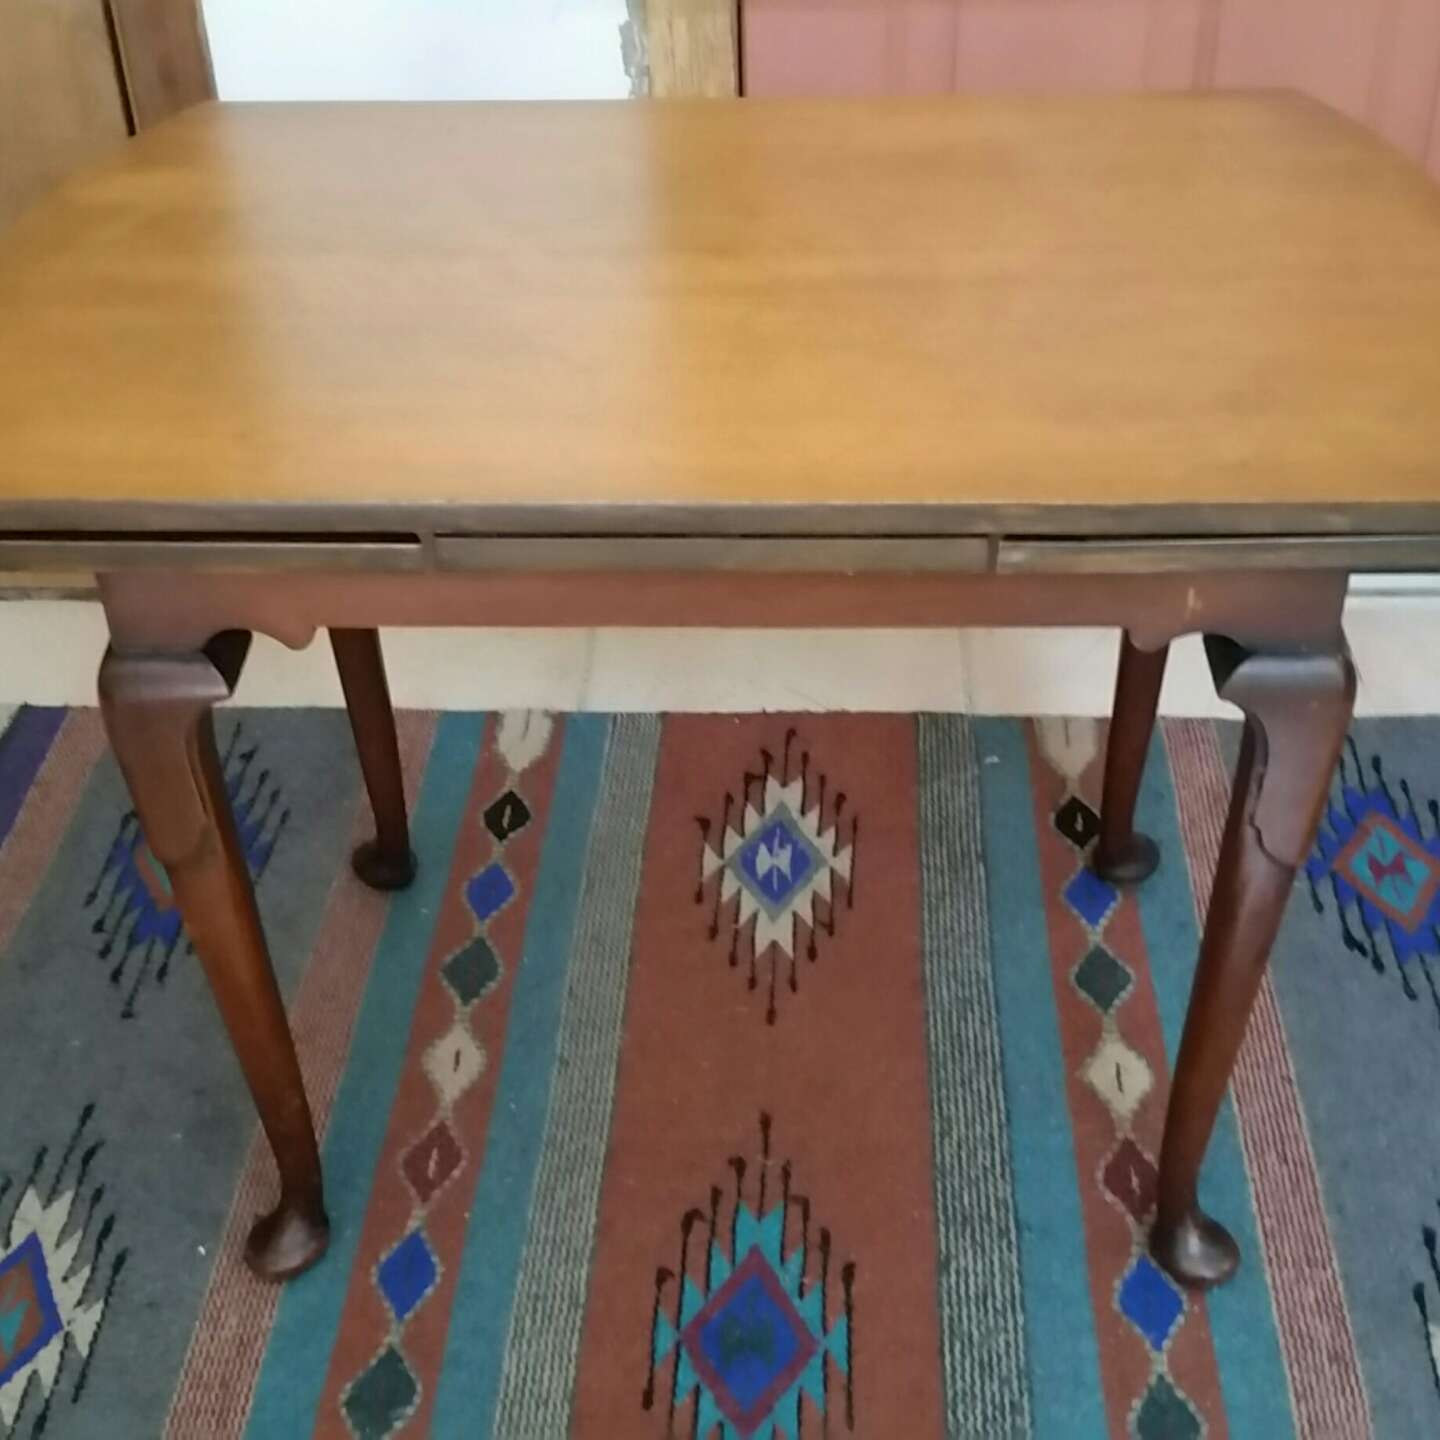 Photo GORGEOUS VINTAGE DROP LEAF TABLE. OLD WOODEN MECHANISM. PIECE OF HISTORY. PICK UP MIDDLEBORO ONLY. SERIOUS INQUIRIES ONLY. 46 OPEN 23H 30W CLOSED 18D.